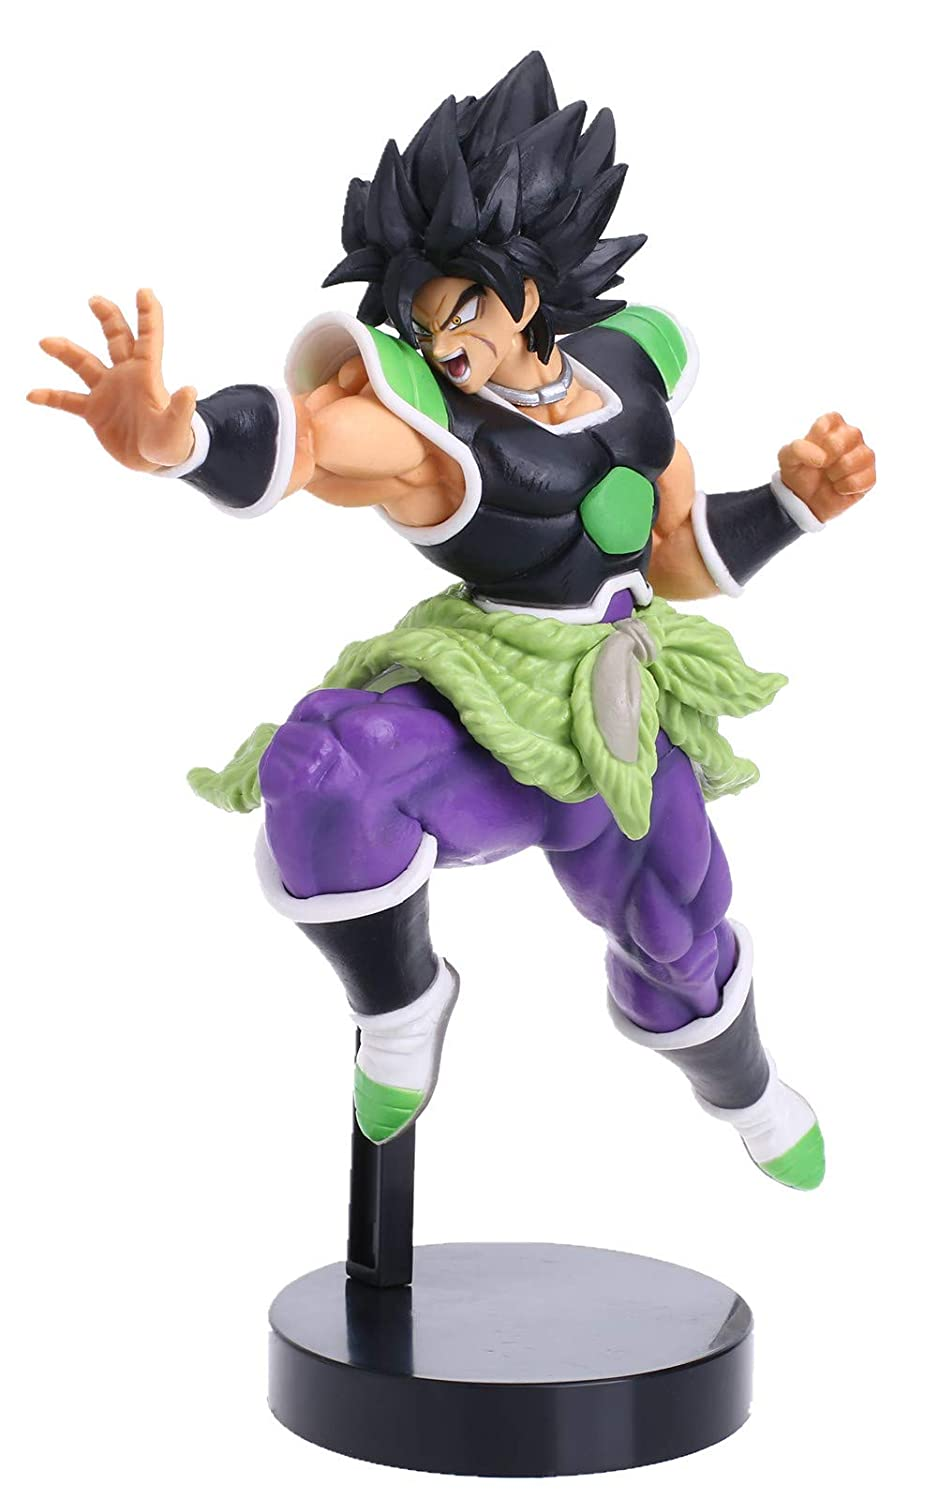 Amazon KELAKE Dragon Ball Z Actions Figures DBZ Super Saiyan Broly Action Figure Statue Figurine Model Doll Collection Birthday Gifts PVC 9 With Out